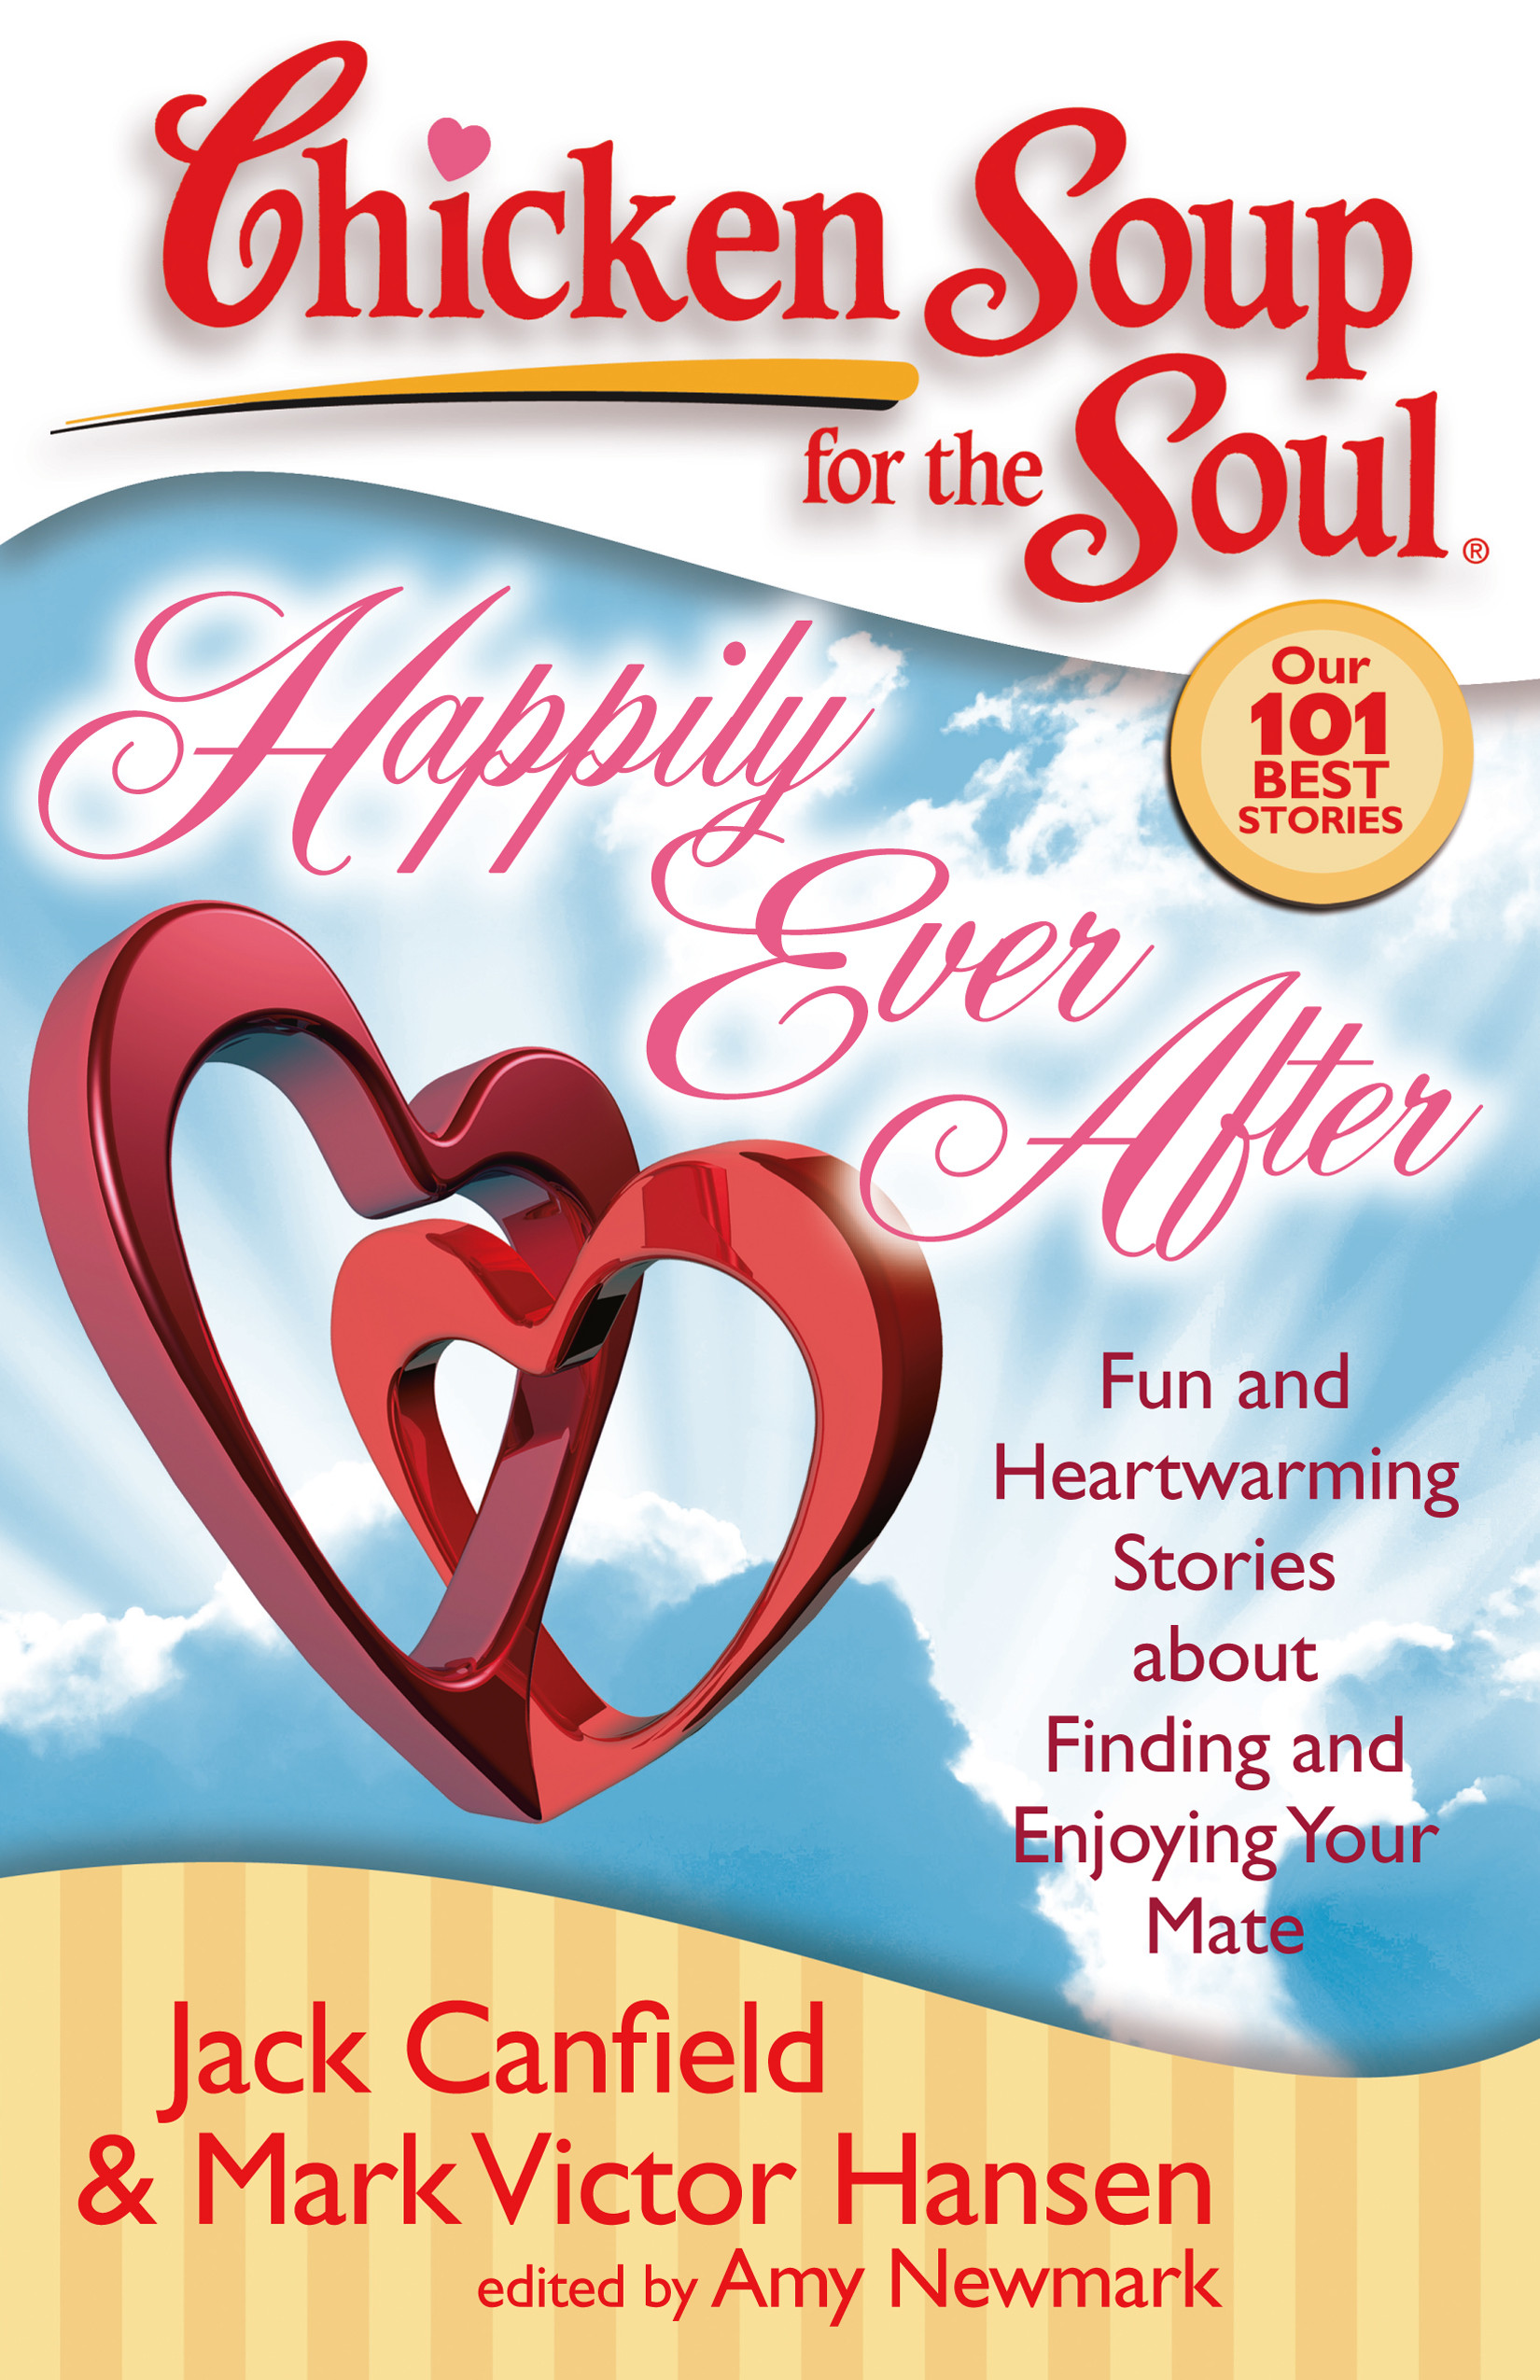 Chicken Soup For The Soul  Chicken Soup for the Soul Happily Ever After